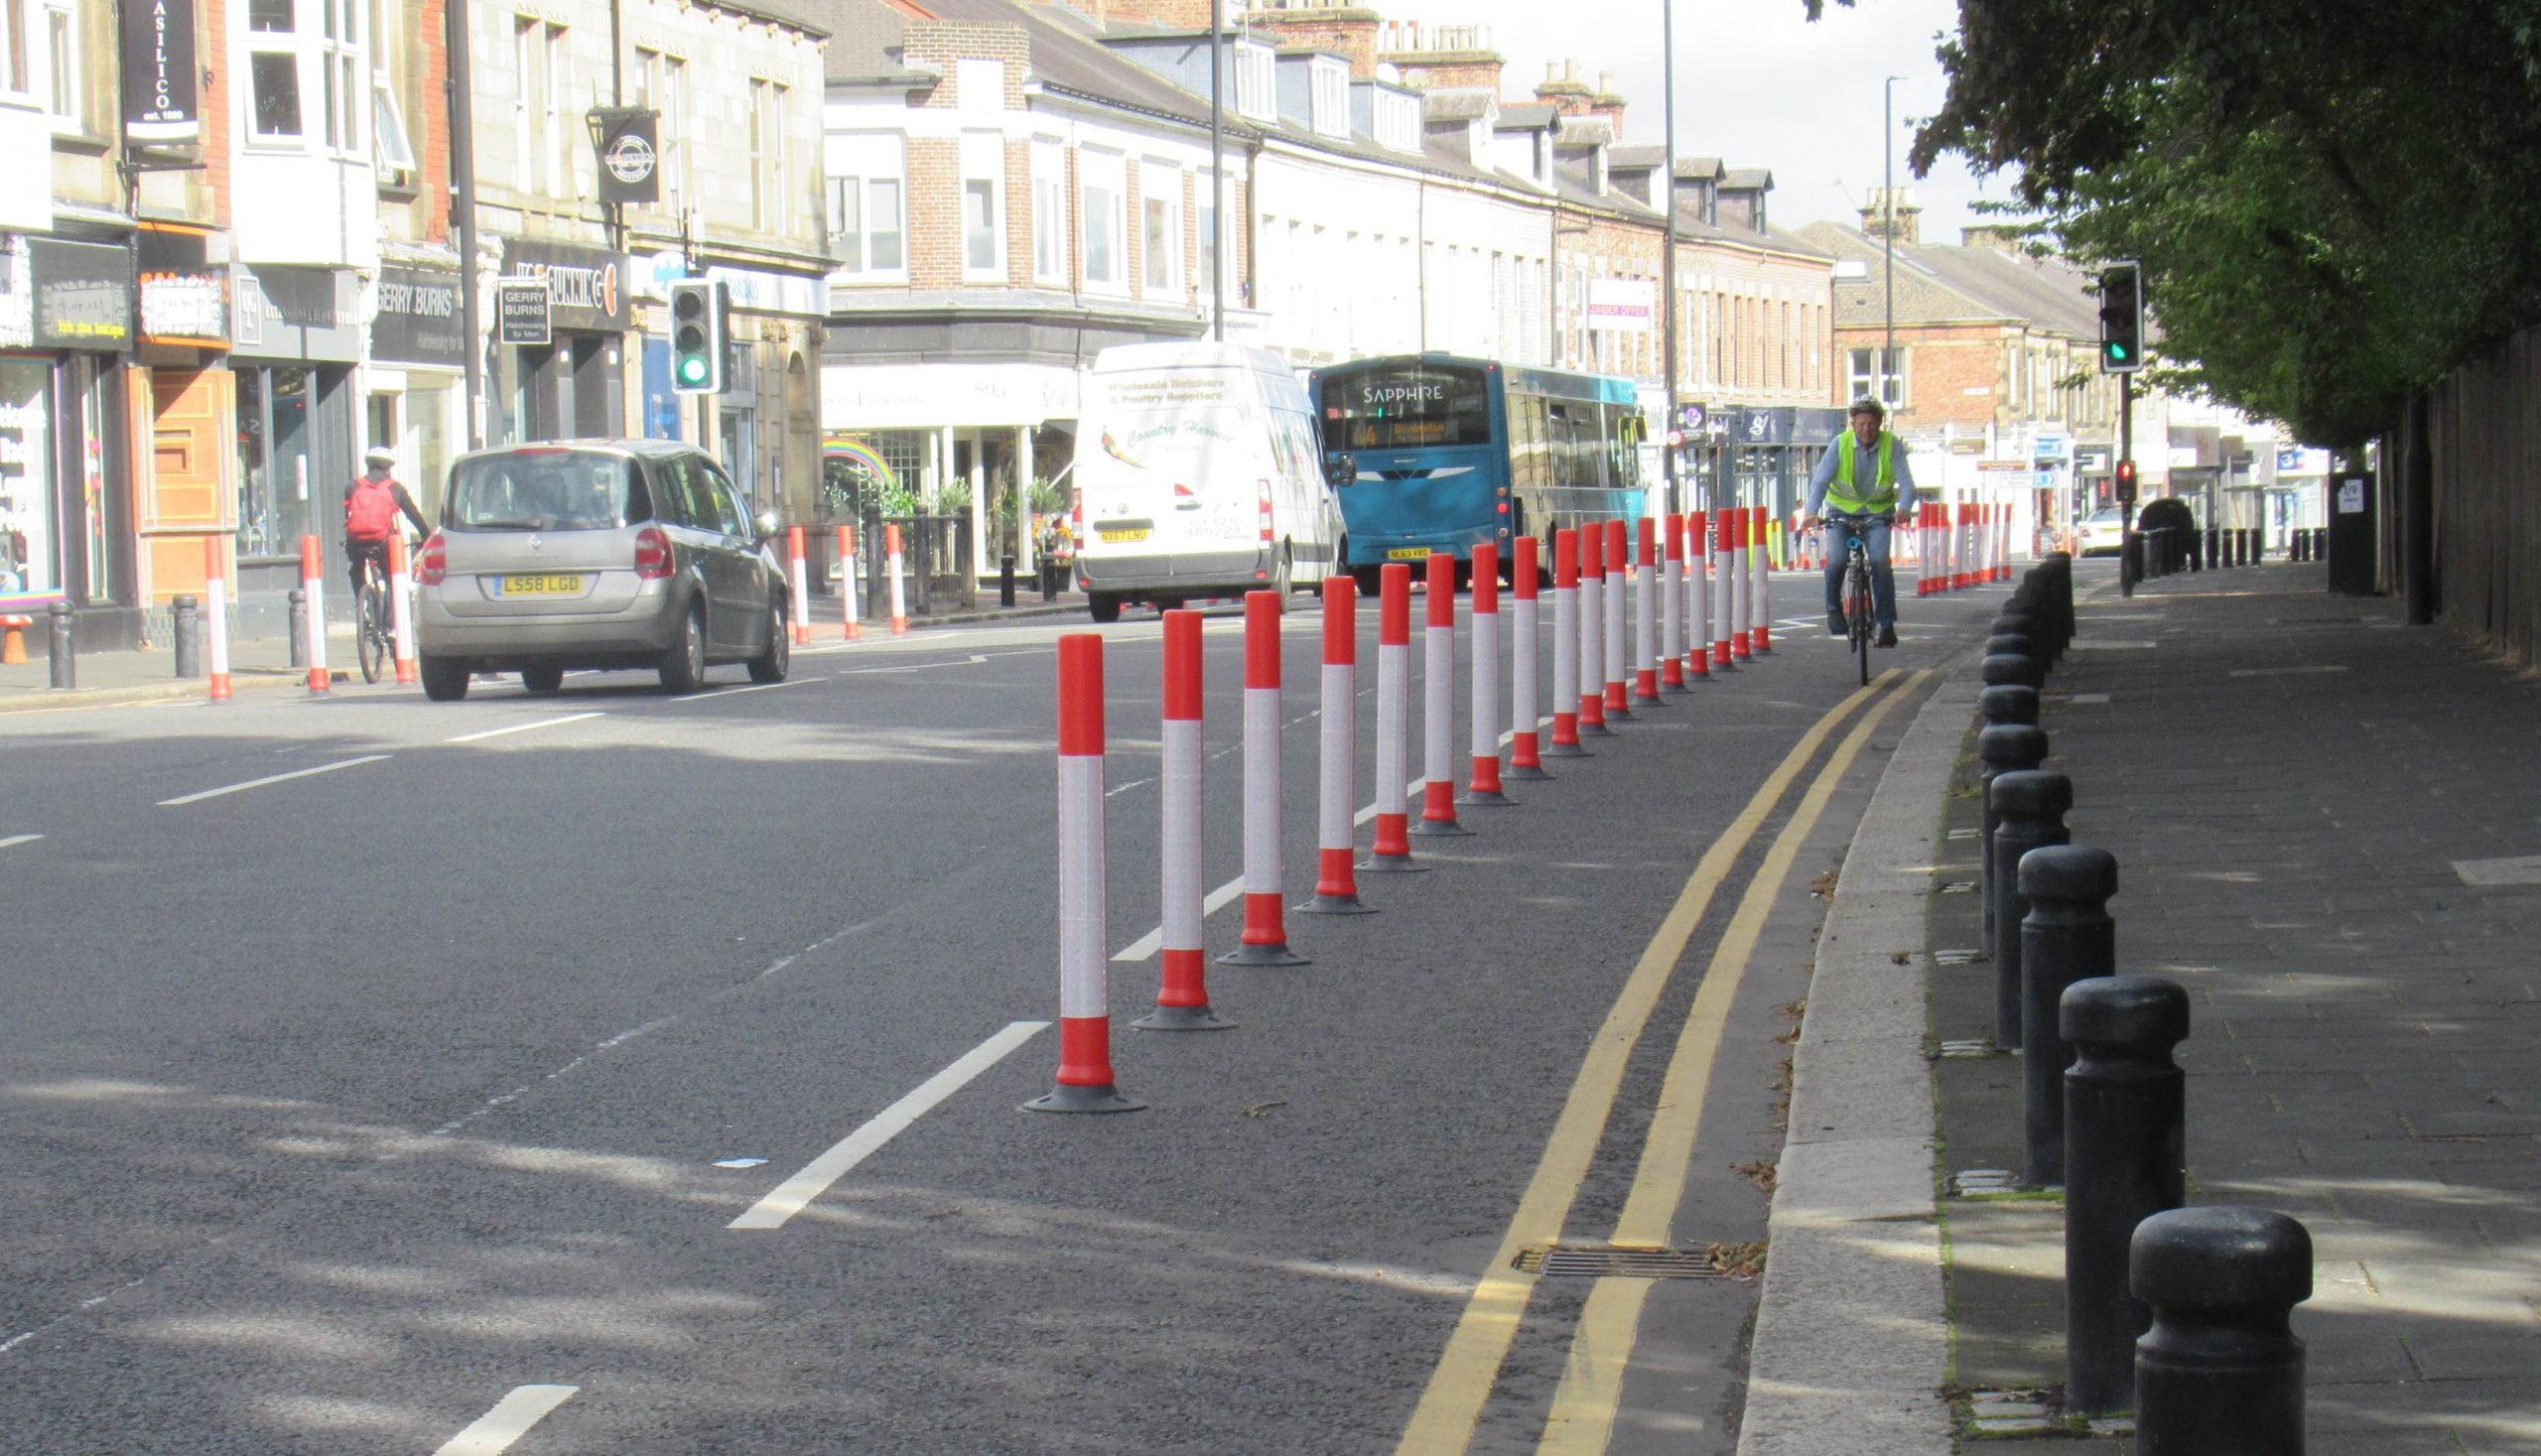 Cycle lane protected by wands southbound by Elmfield Road